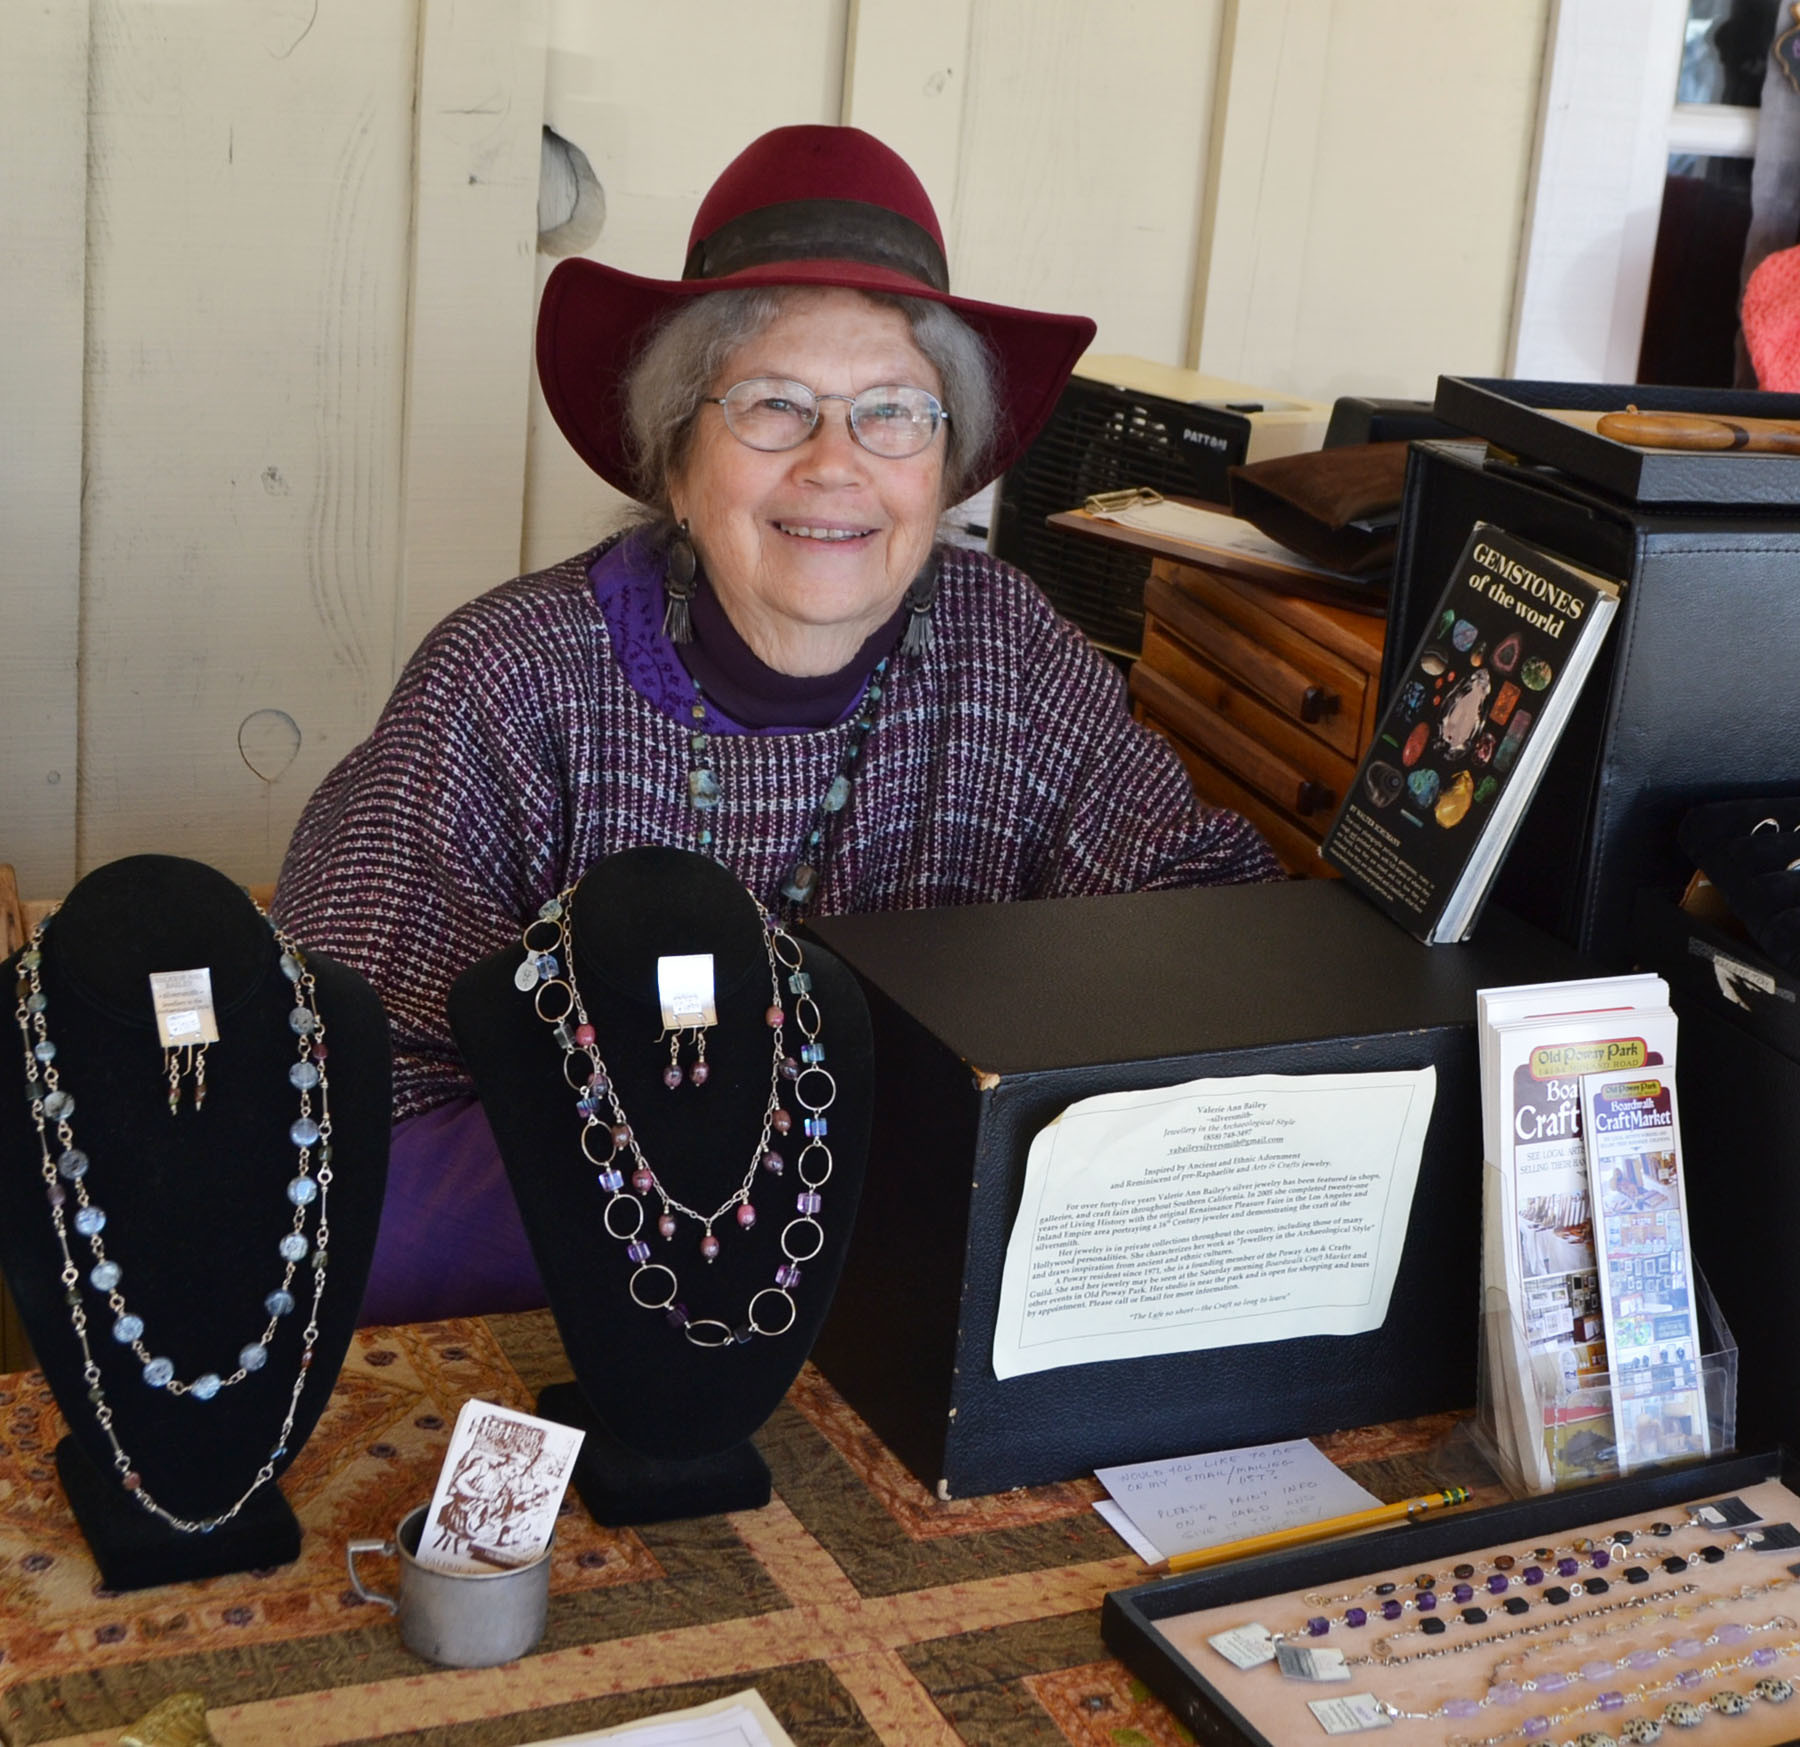 Silversmith Valerie Ann Bailey, who has been with the Boardwalk Craft Market since the beginning.